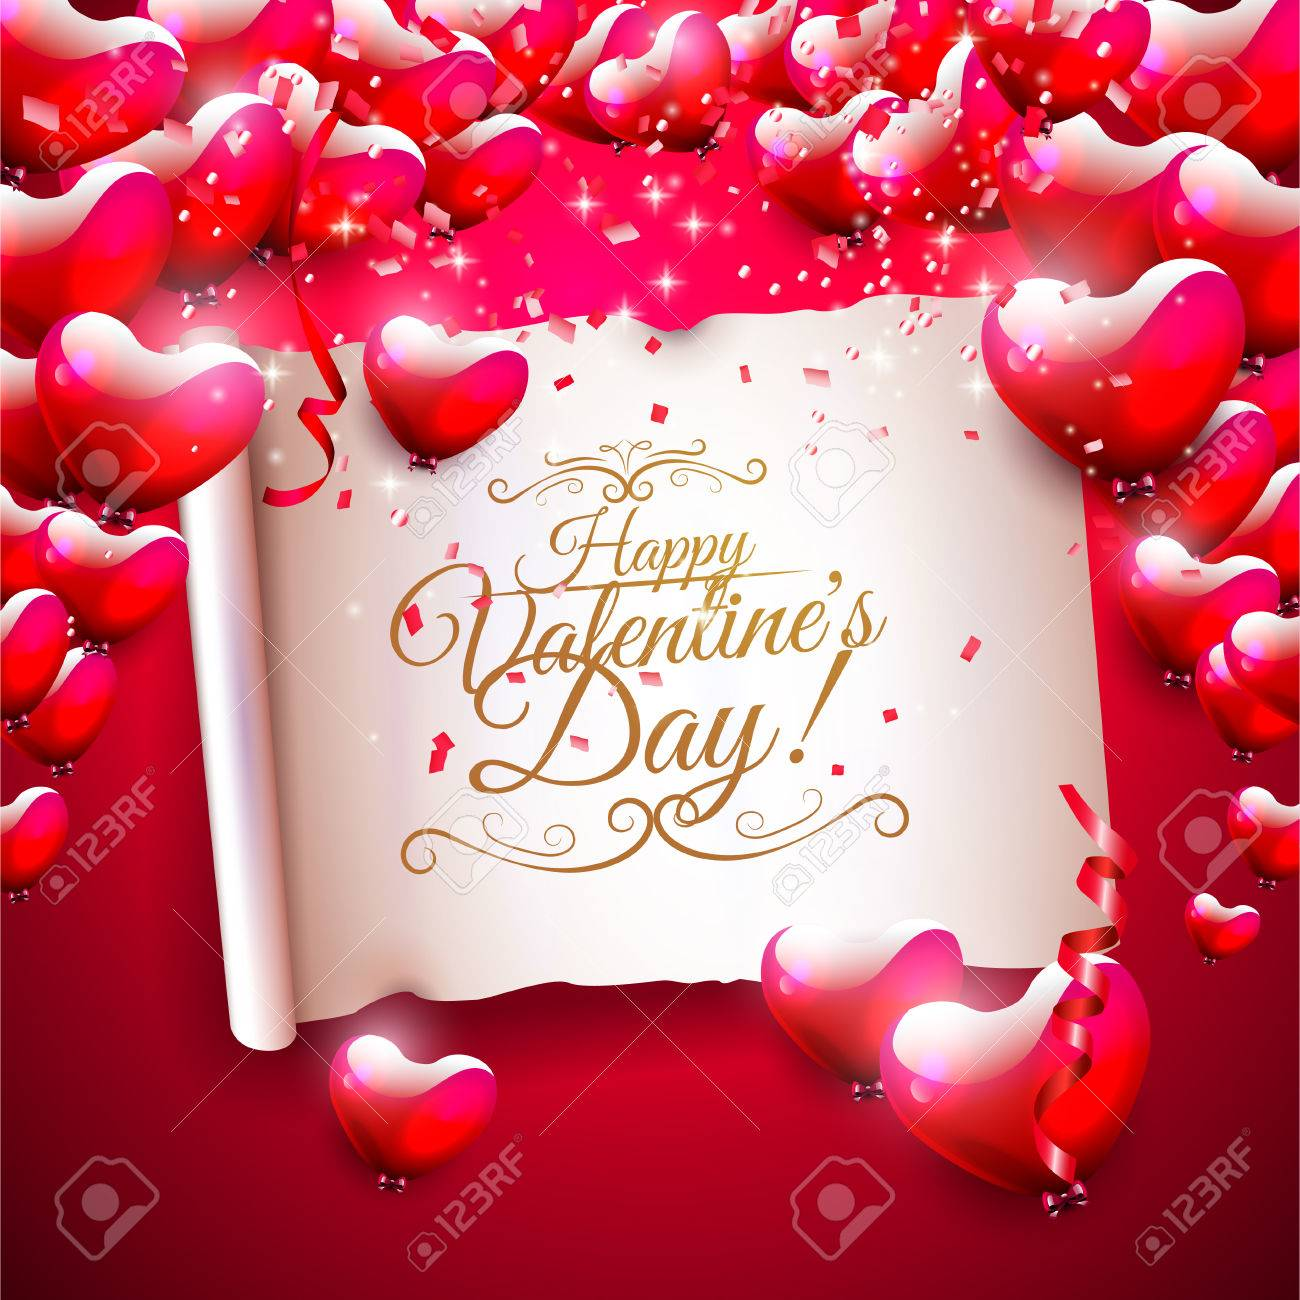 Modern valentines day greeting card with glossy heart shaped modern valentines day greeting card with glossy heart shaped balloons and old paper with calligraphic m4hsunfo Image collections